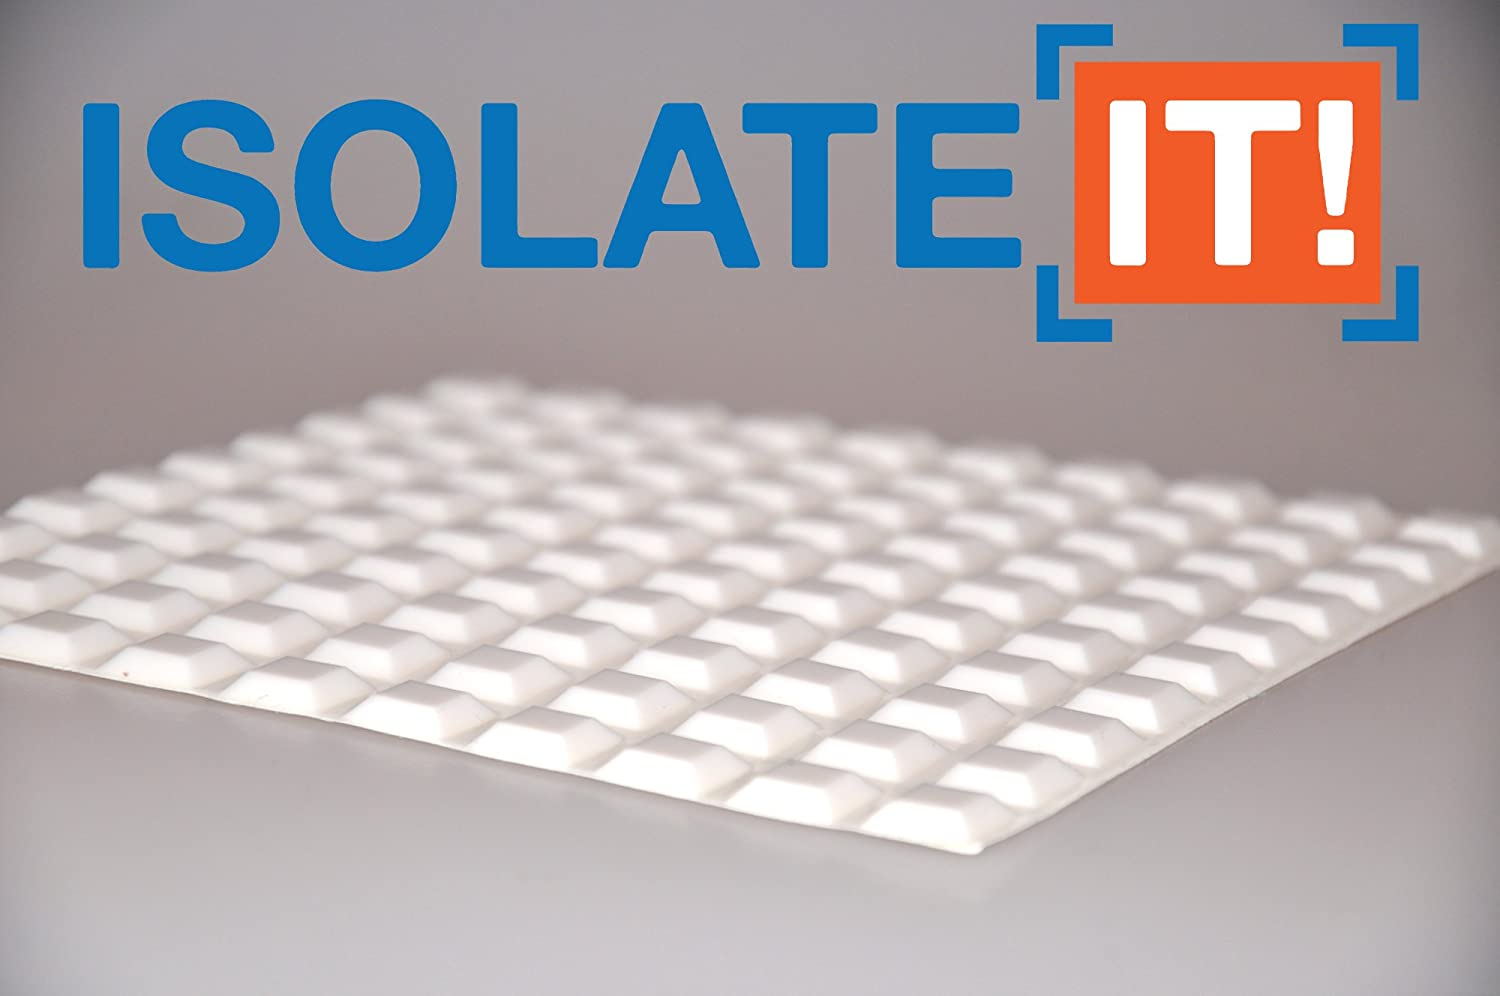 Isolate It!: Small White 12.7mm (0.5) W x 3mm (0.12) H - Square Cabinet and Furniture Bumper - 25 Pack 9800050-25